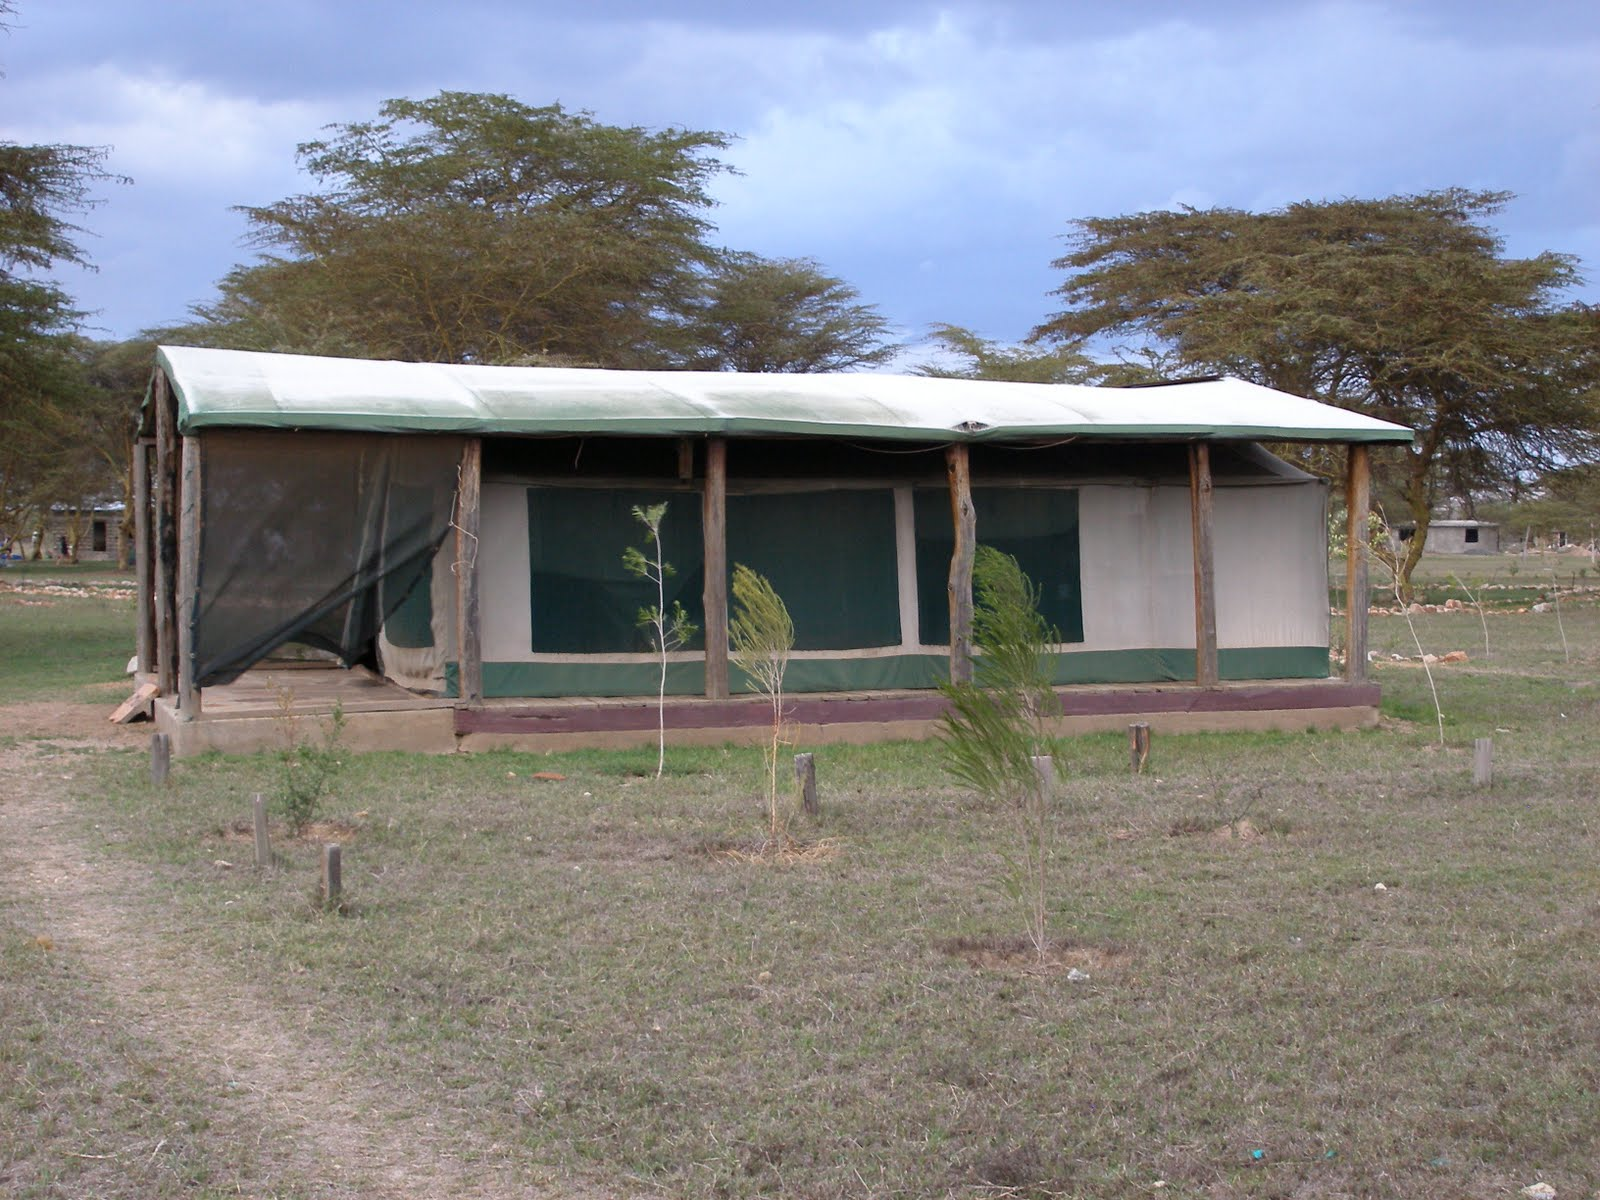 The pocahontas files kenya 2011 from mountain to mara for Permanent tent cabins